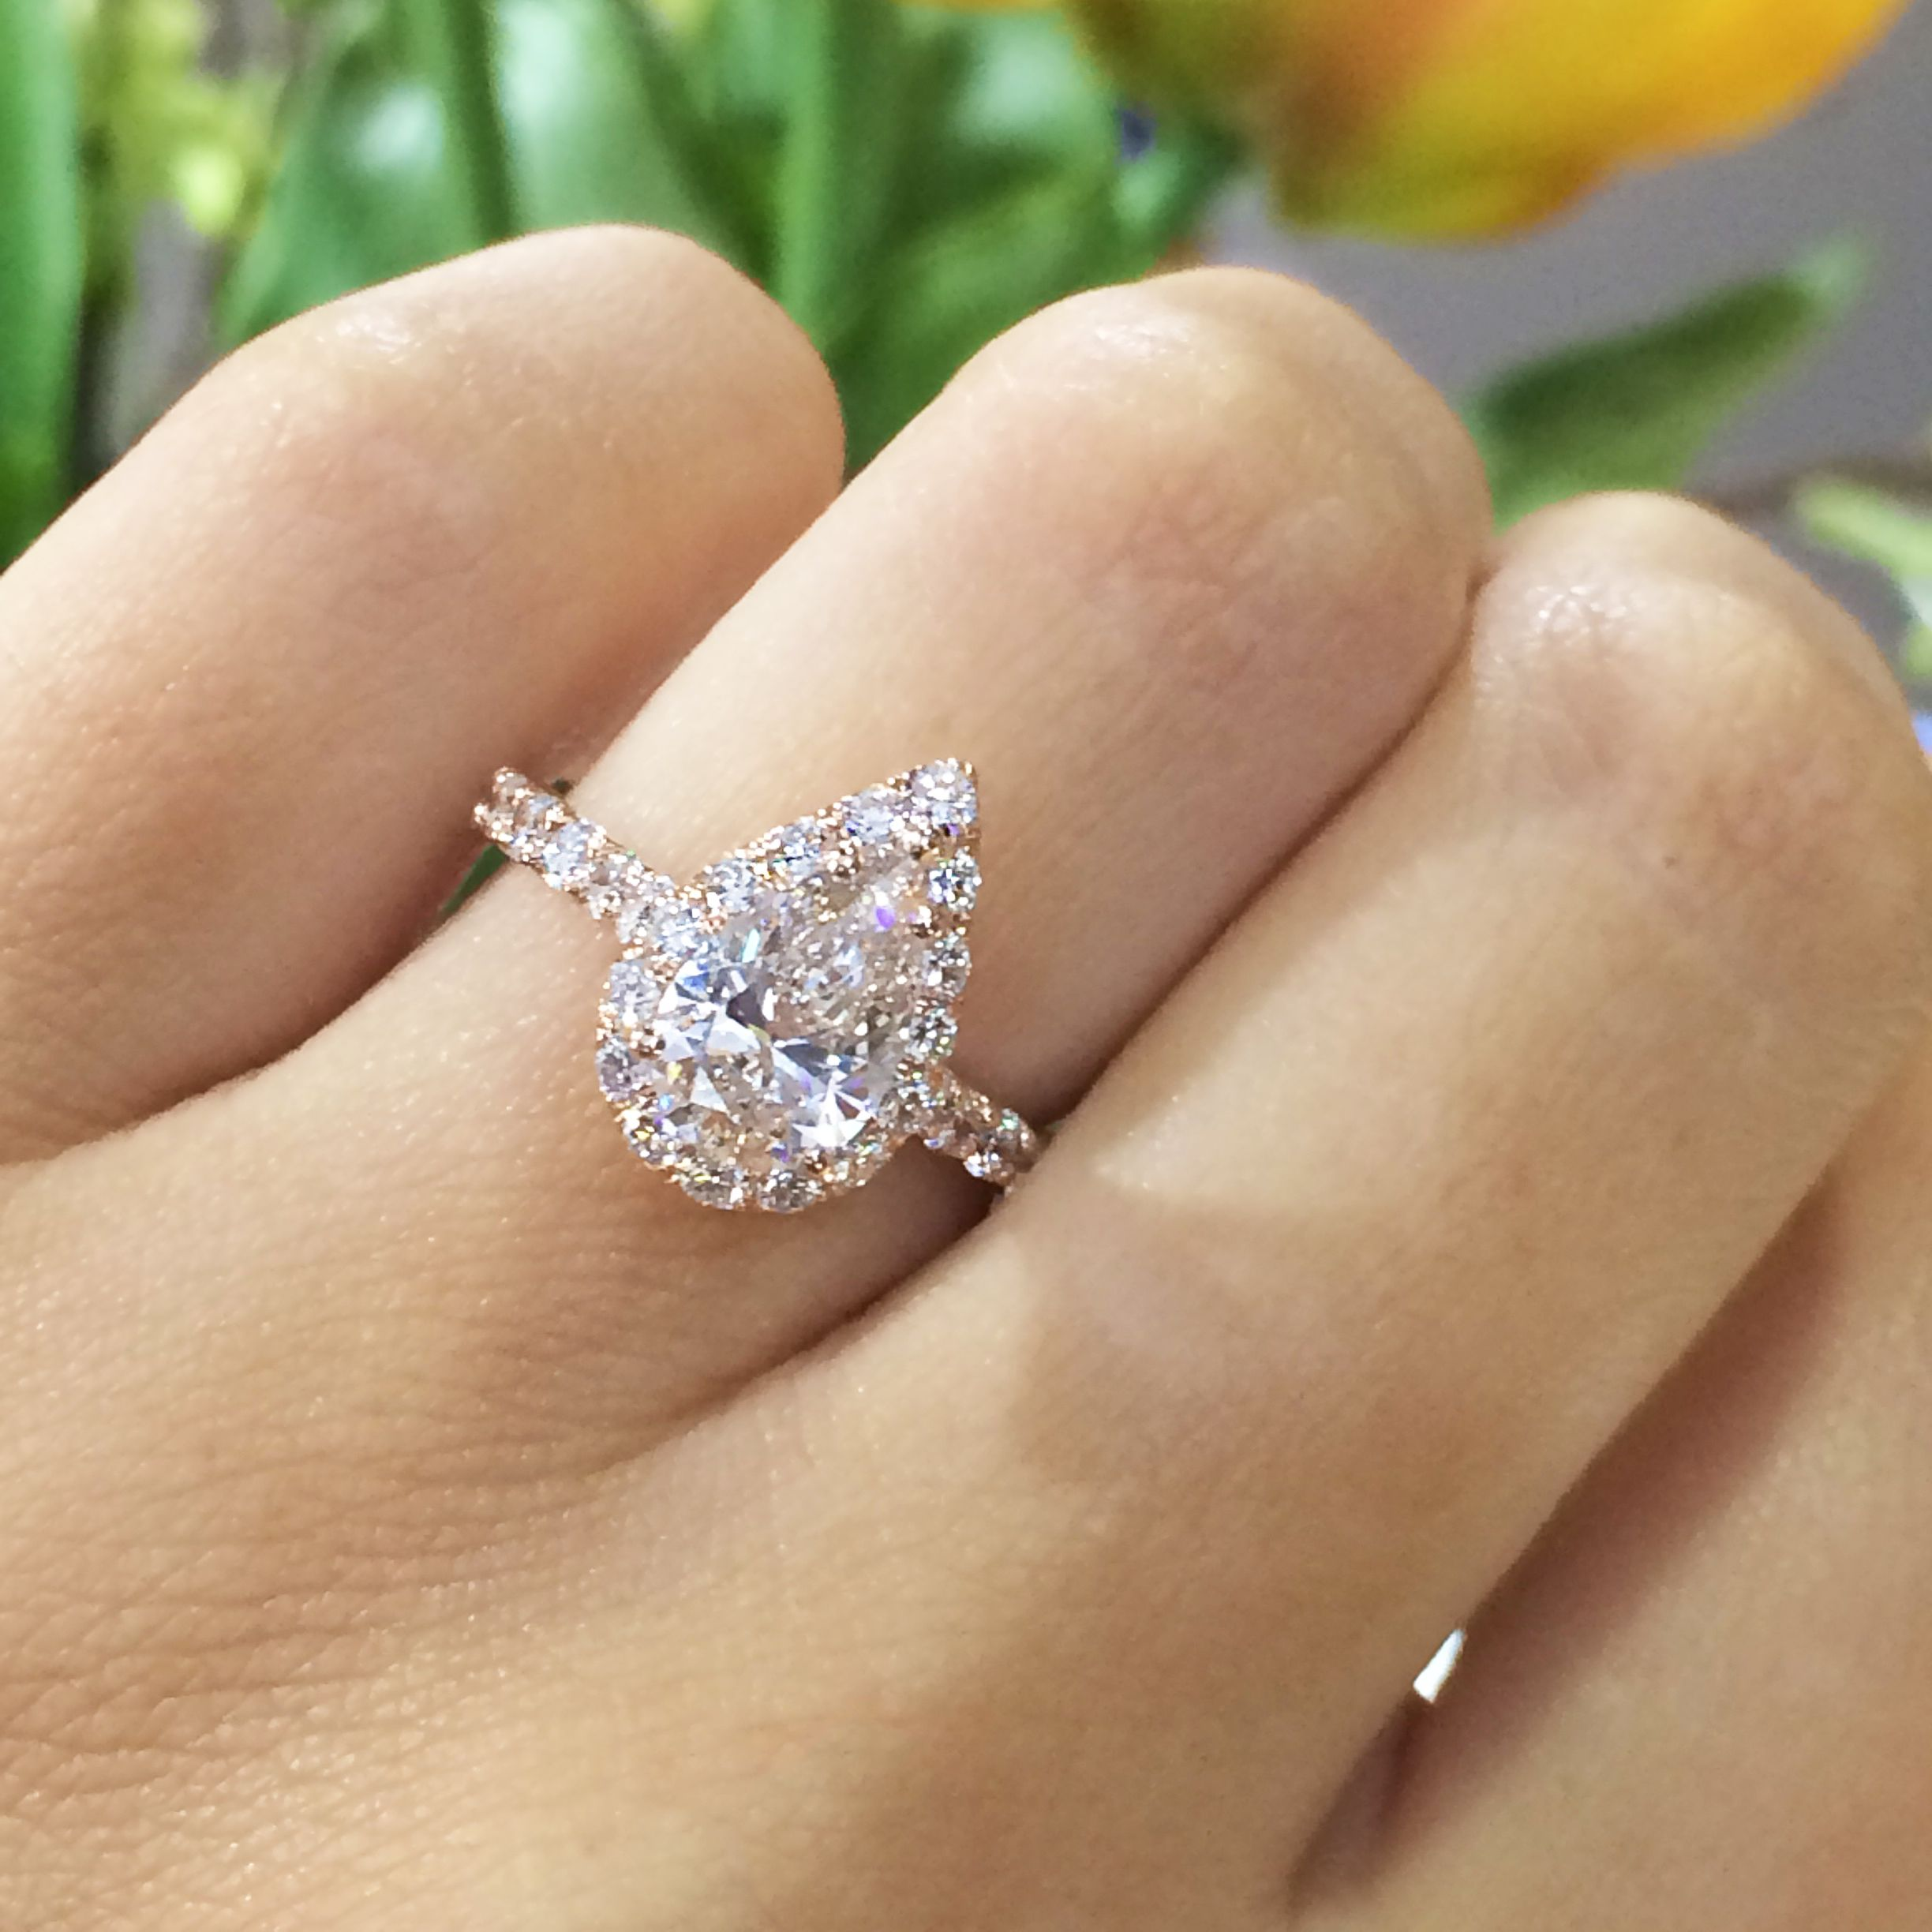 scavia carat engagement lovely ring com inspirational diamond the shaped pear a of with set thewhistleng